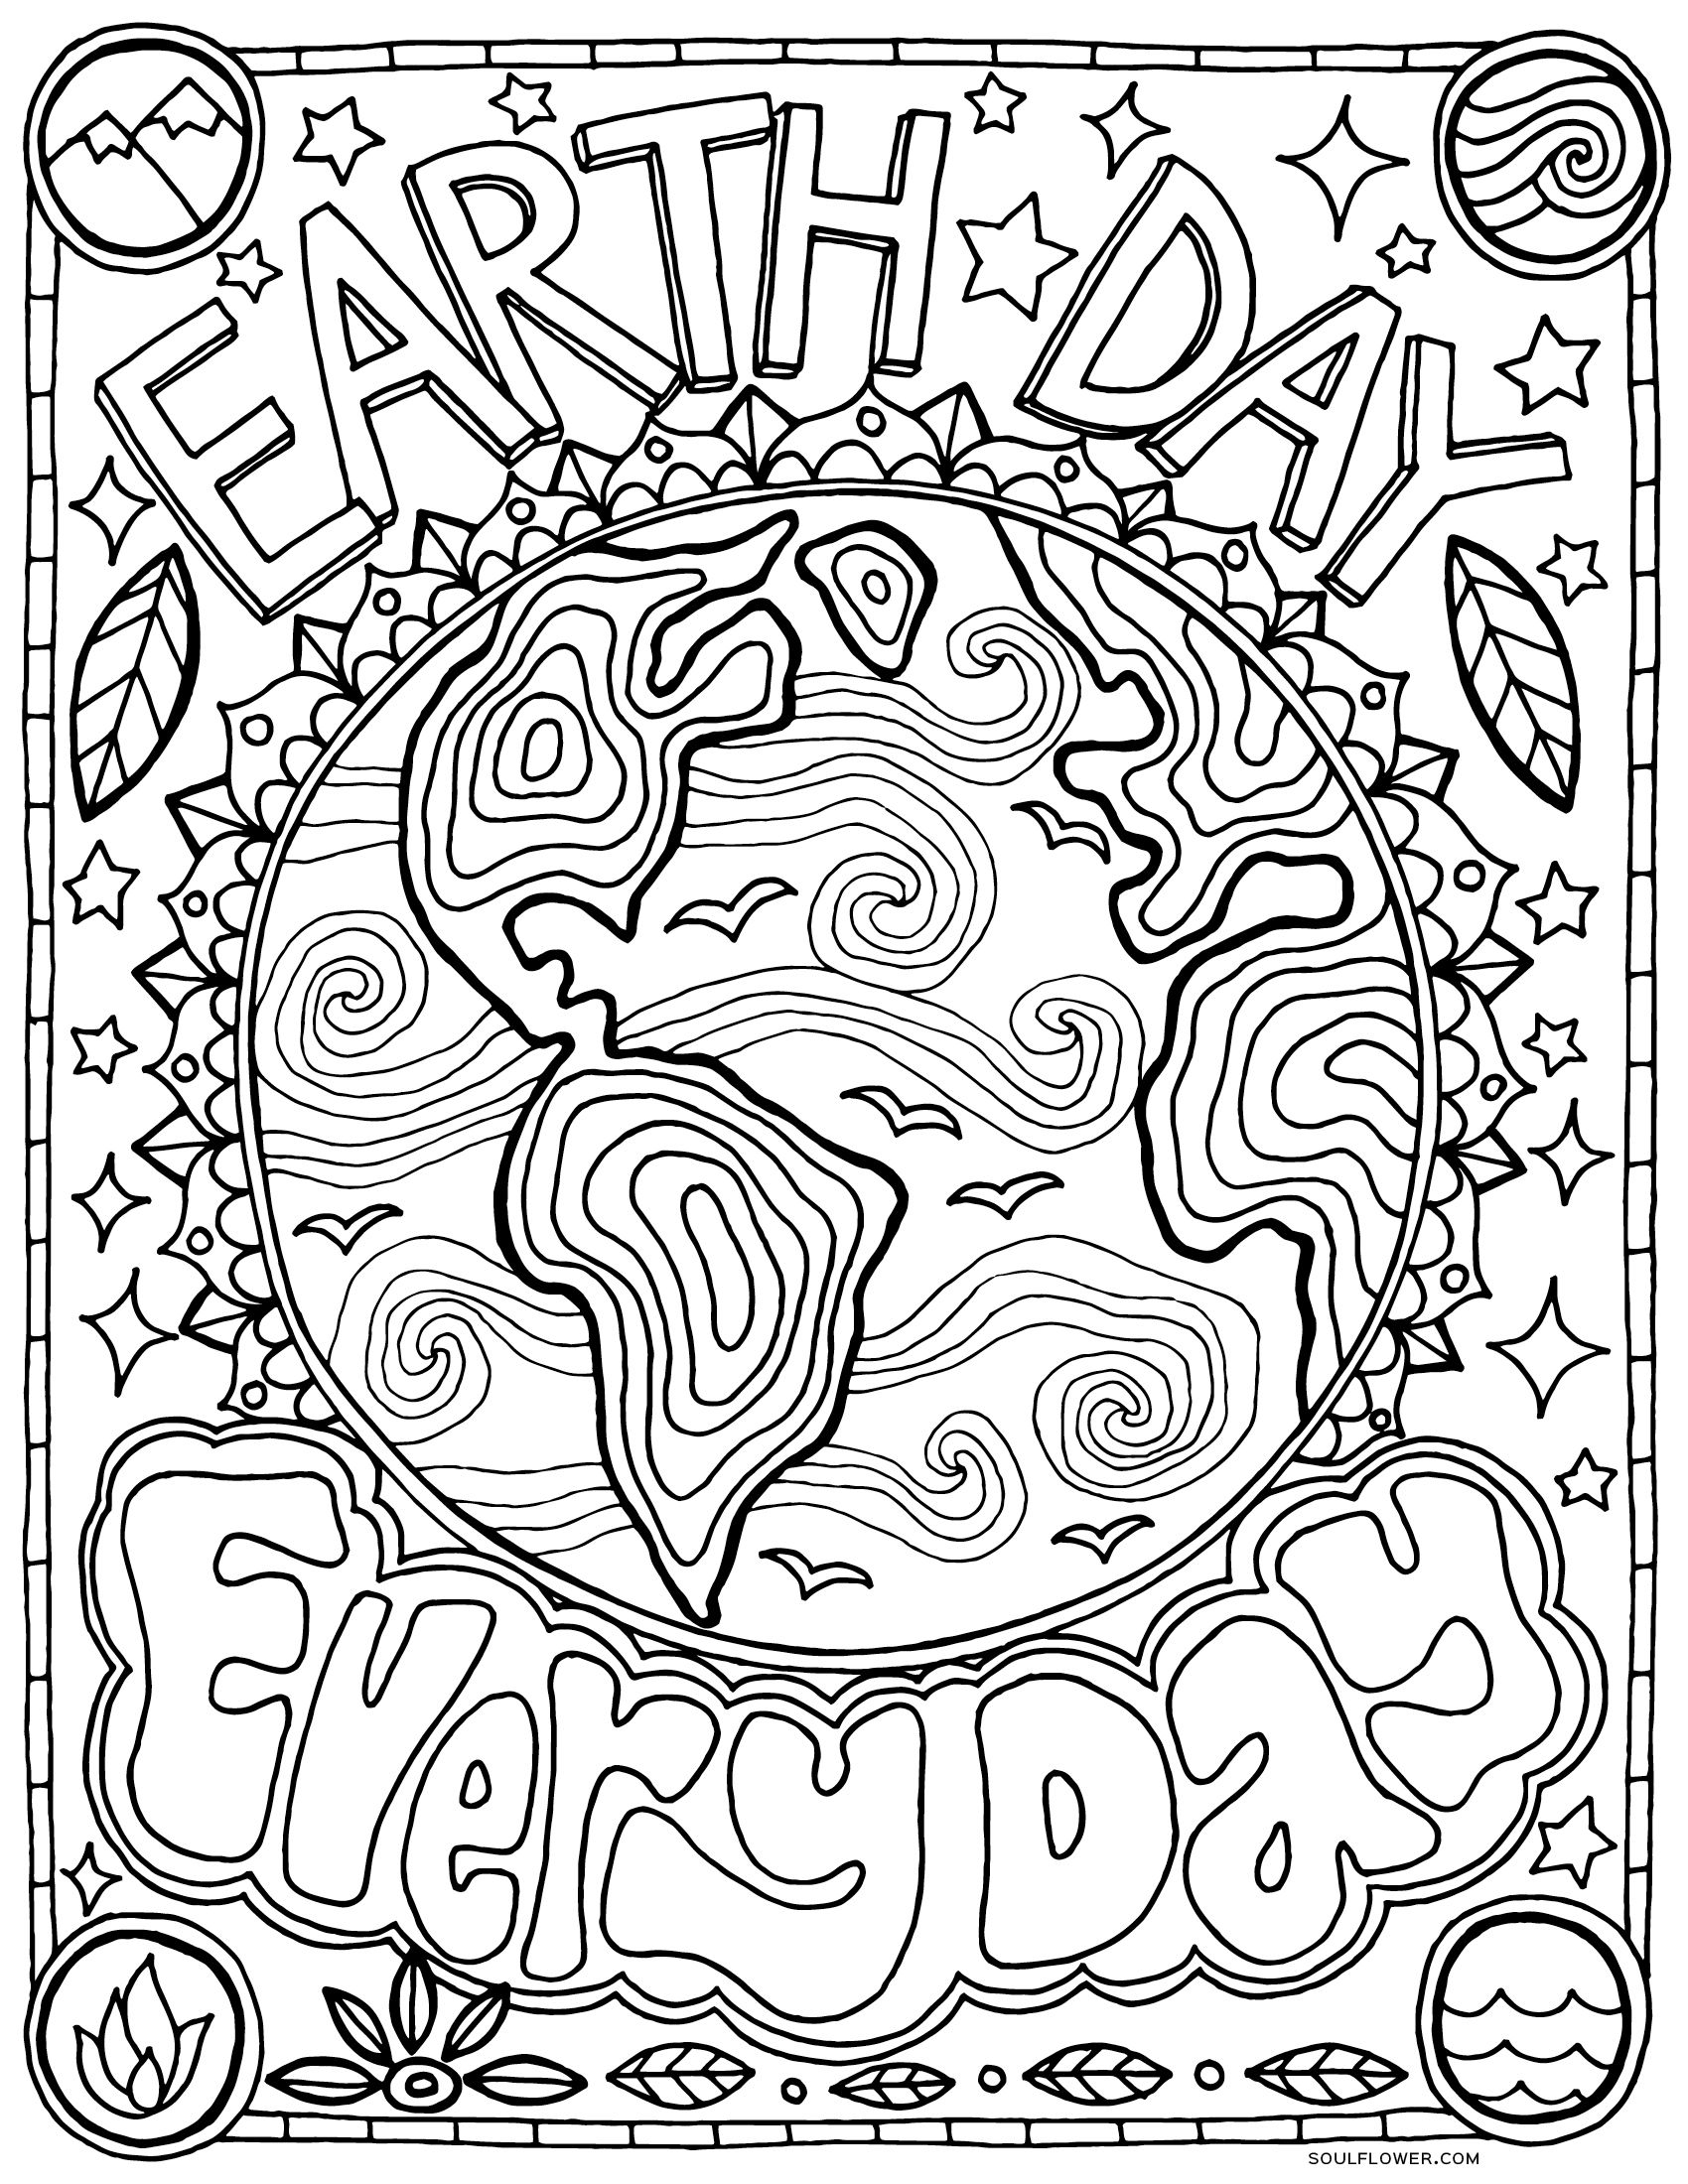 Earth Day Coloring Pages Coloring Ideas Free Earth Day Coloring Pages Page Diy Crafts Ideas